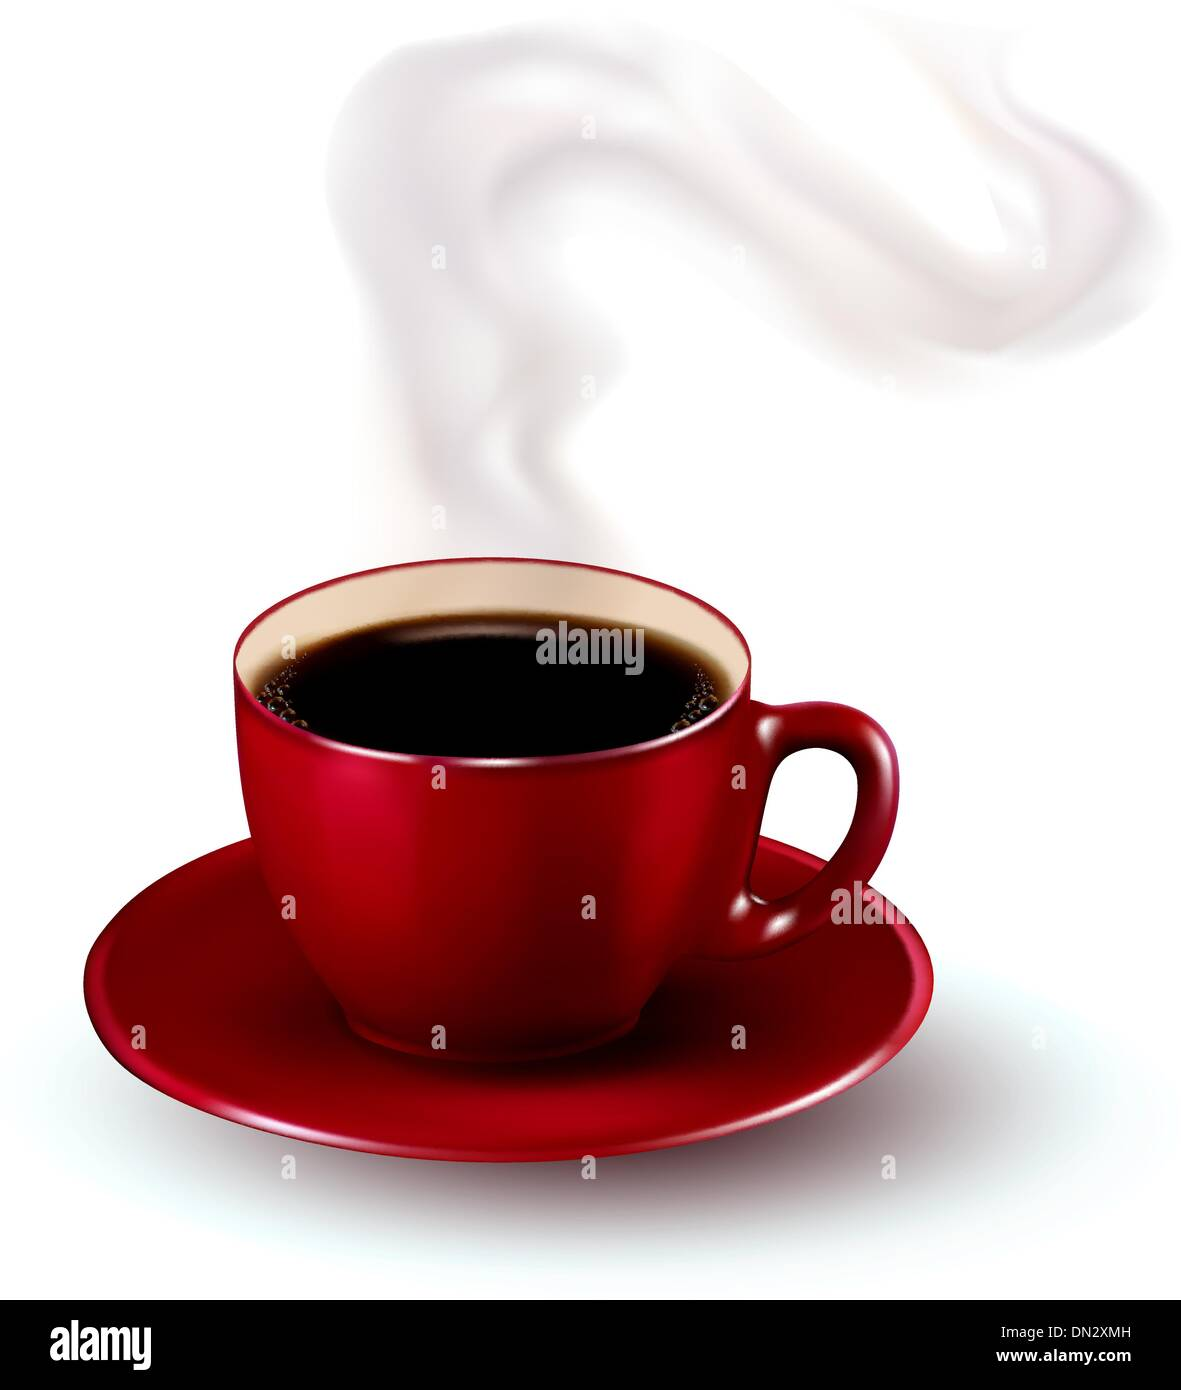 Perfect red cup of coffee with steam. Vector illustration. - Stock Image